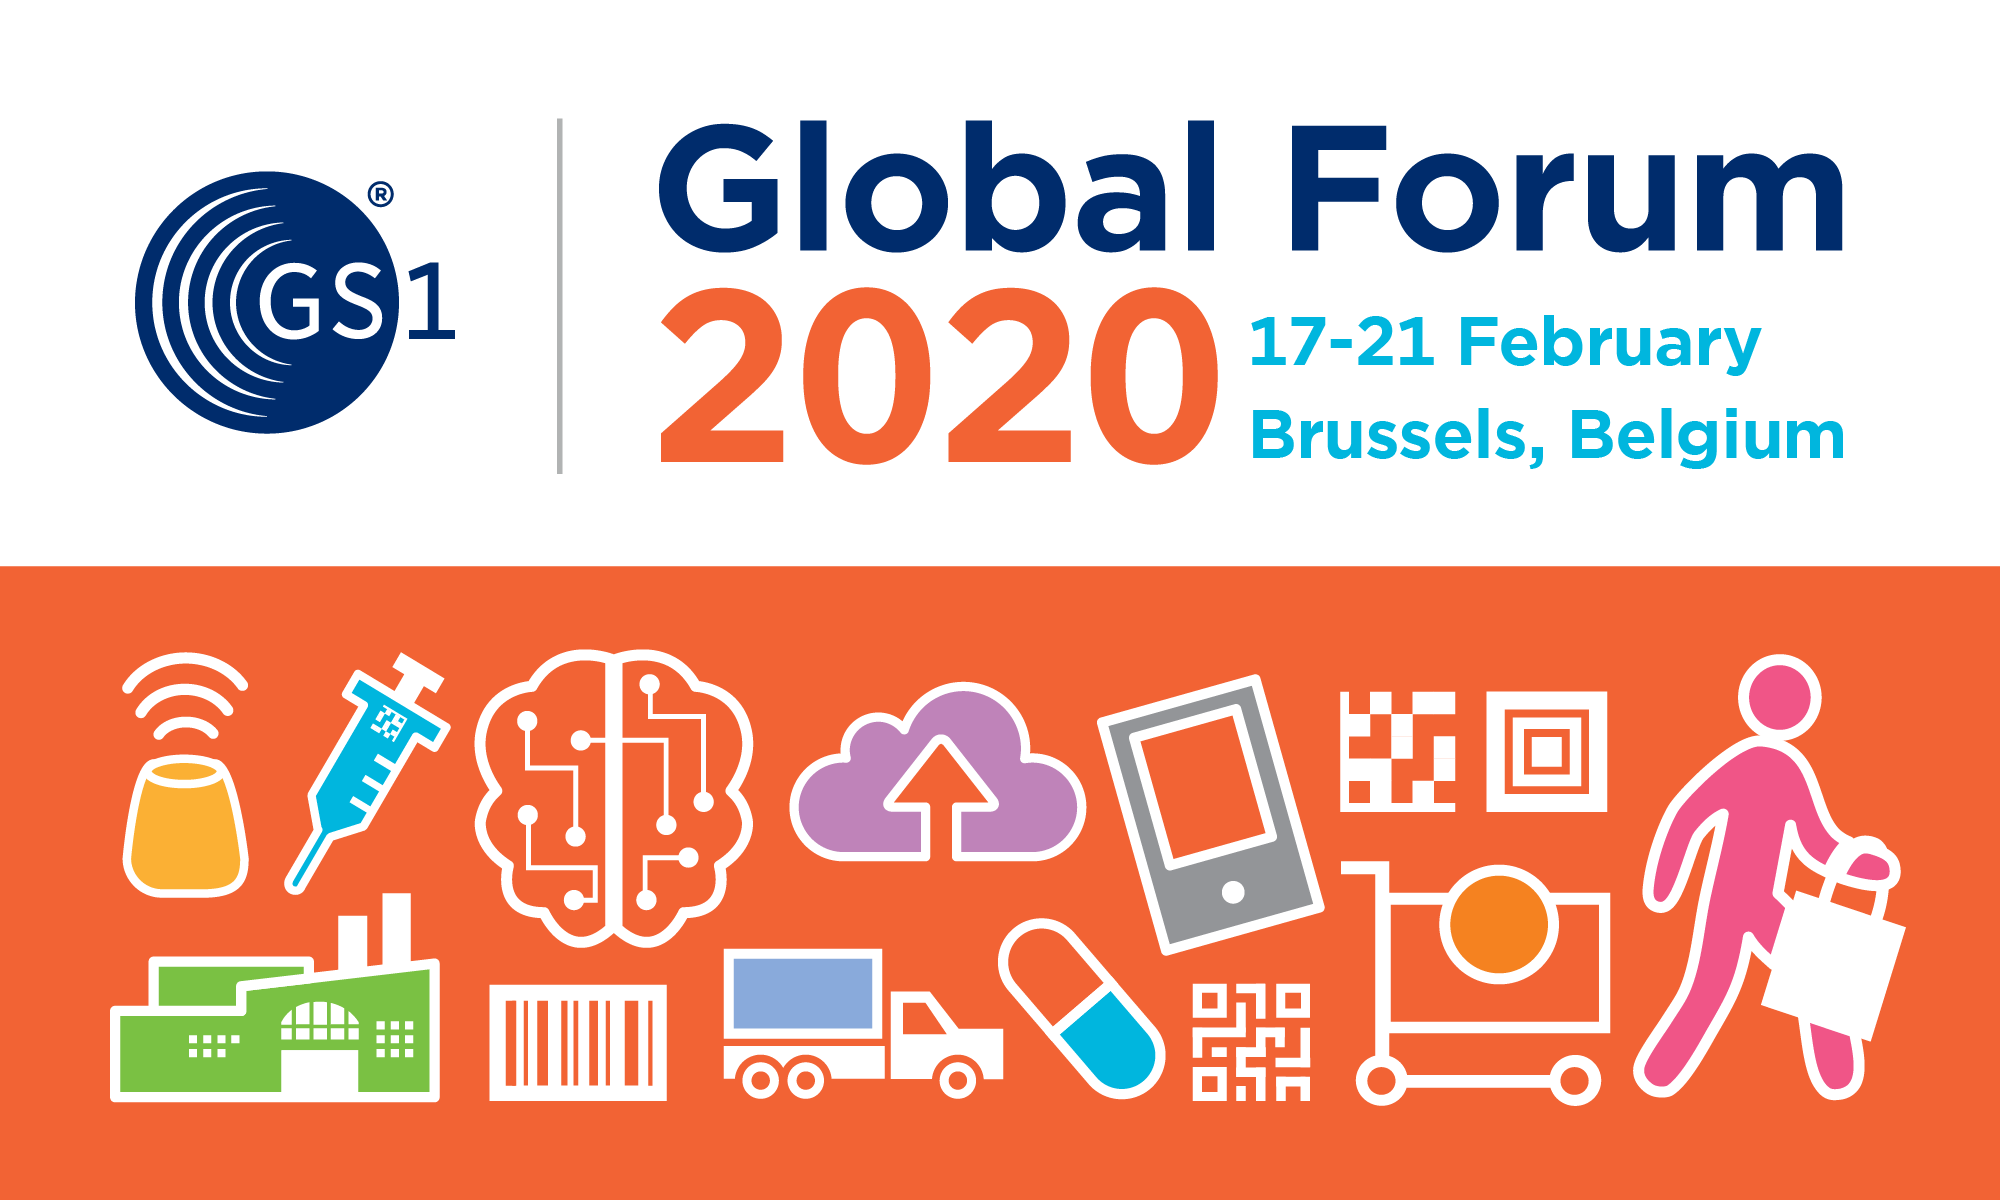 GS1 Global Forum 2020